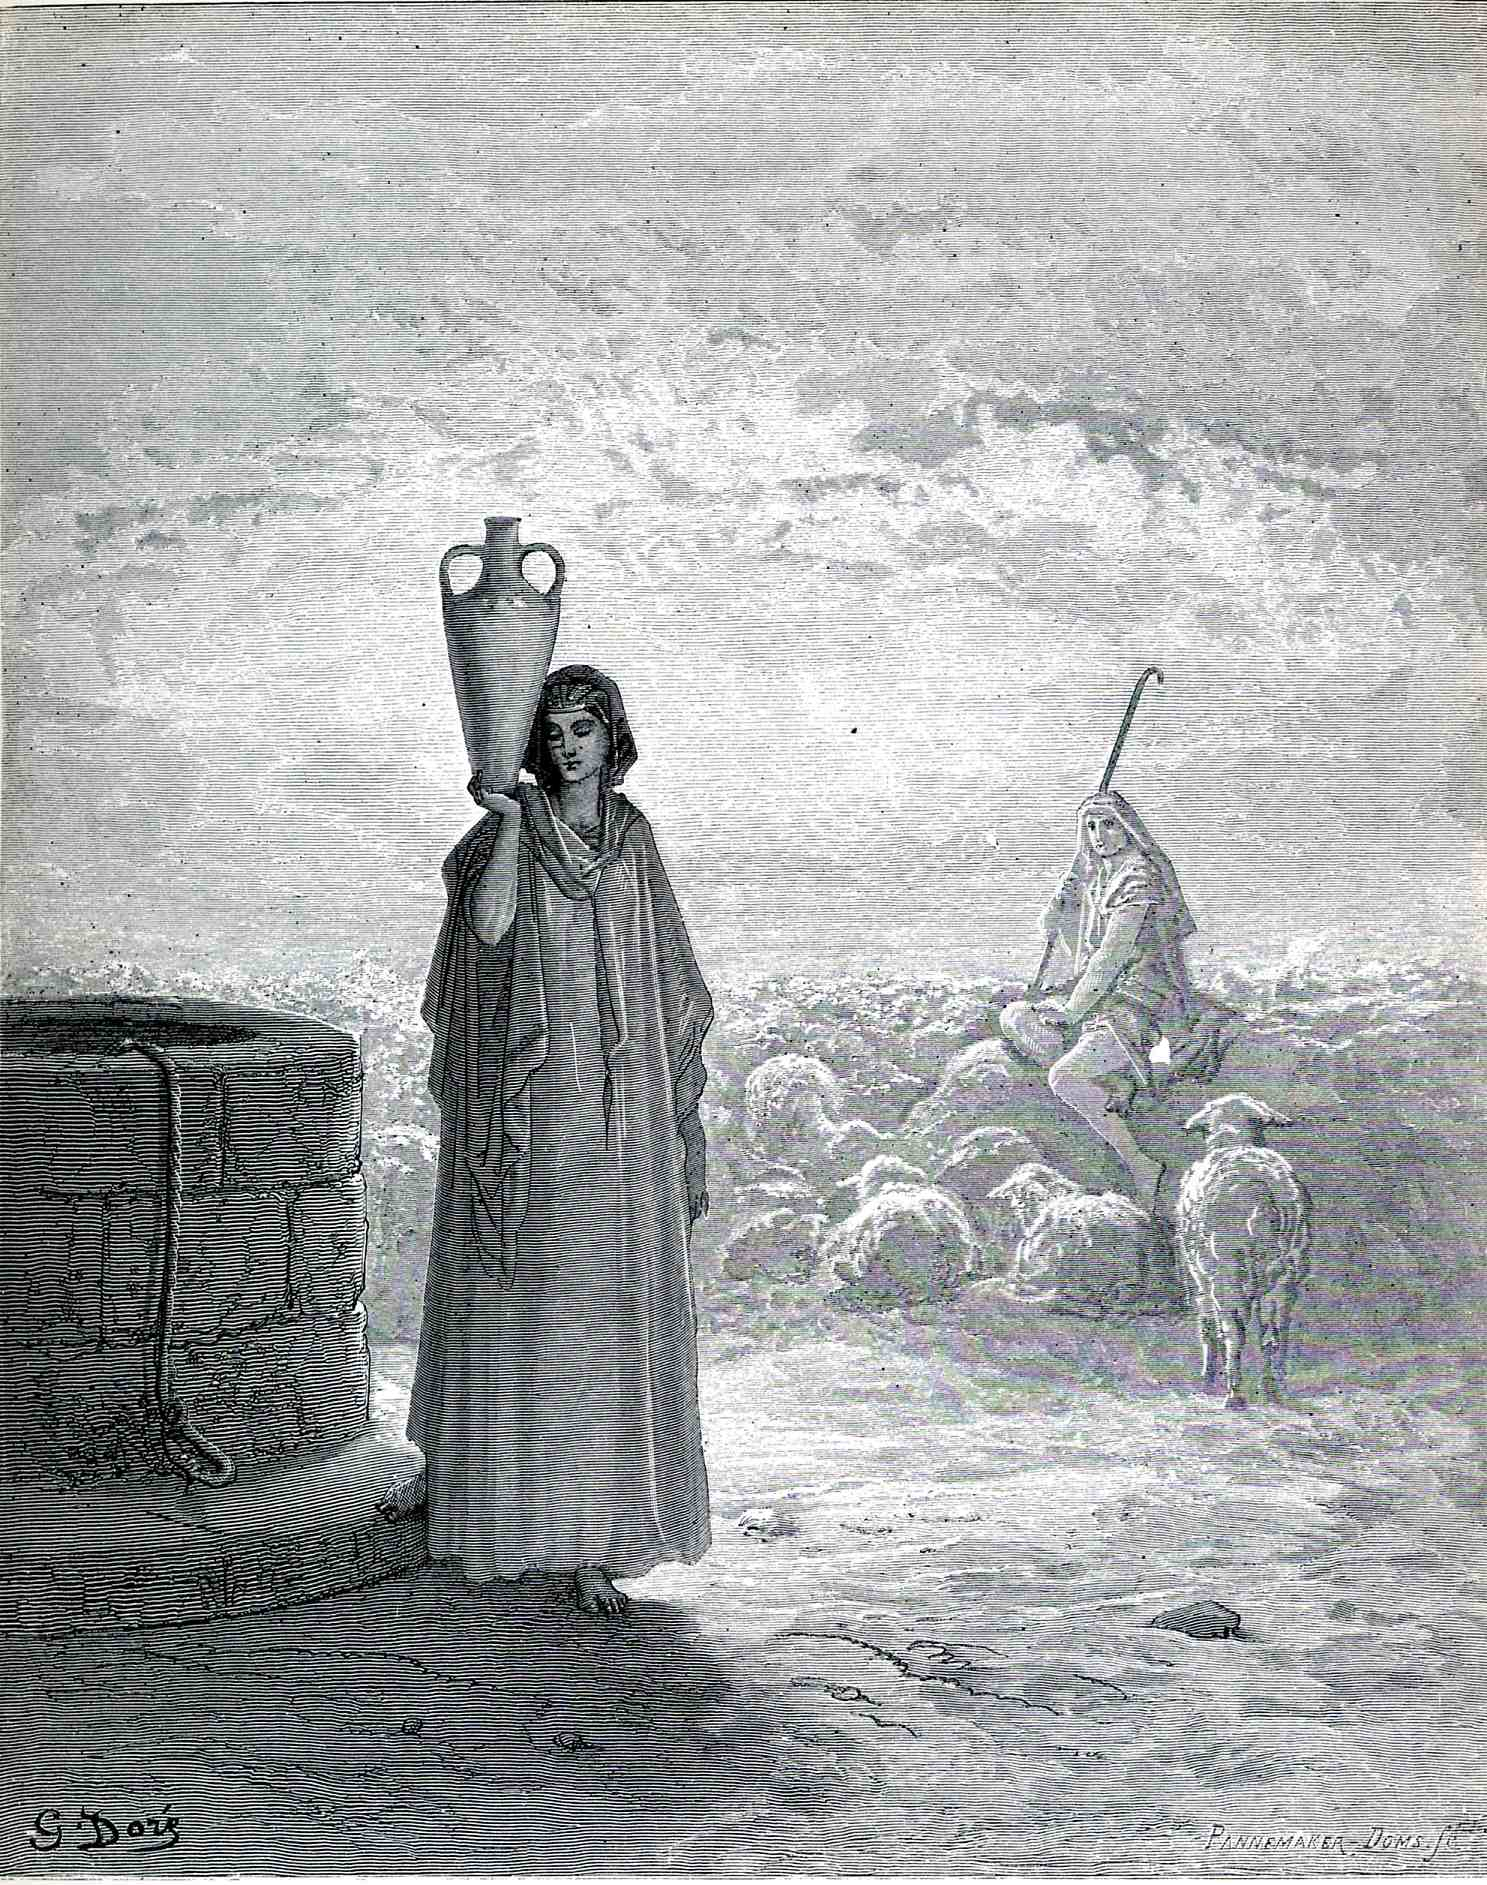 an analysis of the piece the wave by gustave dore of the menil collection